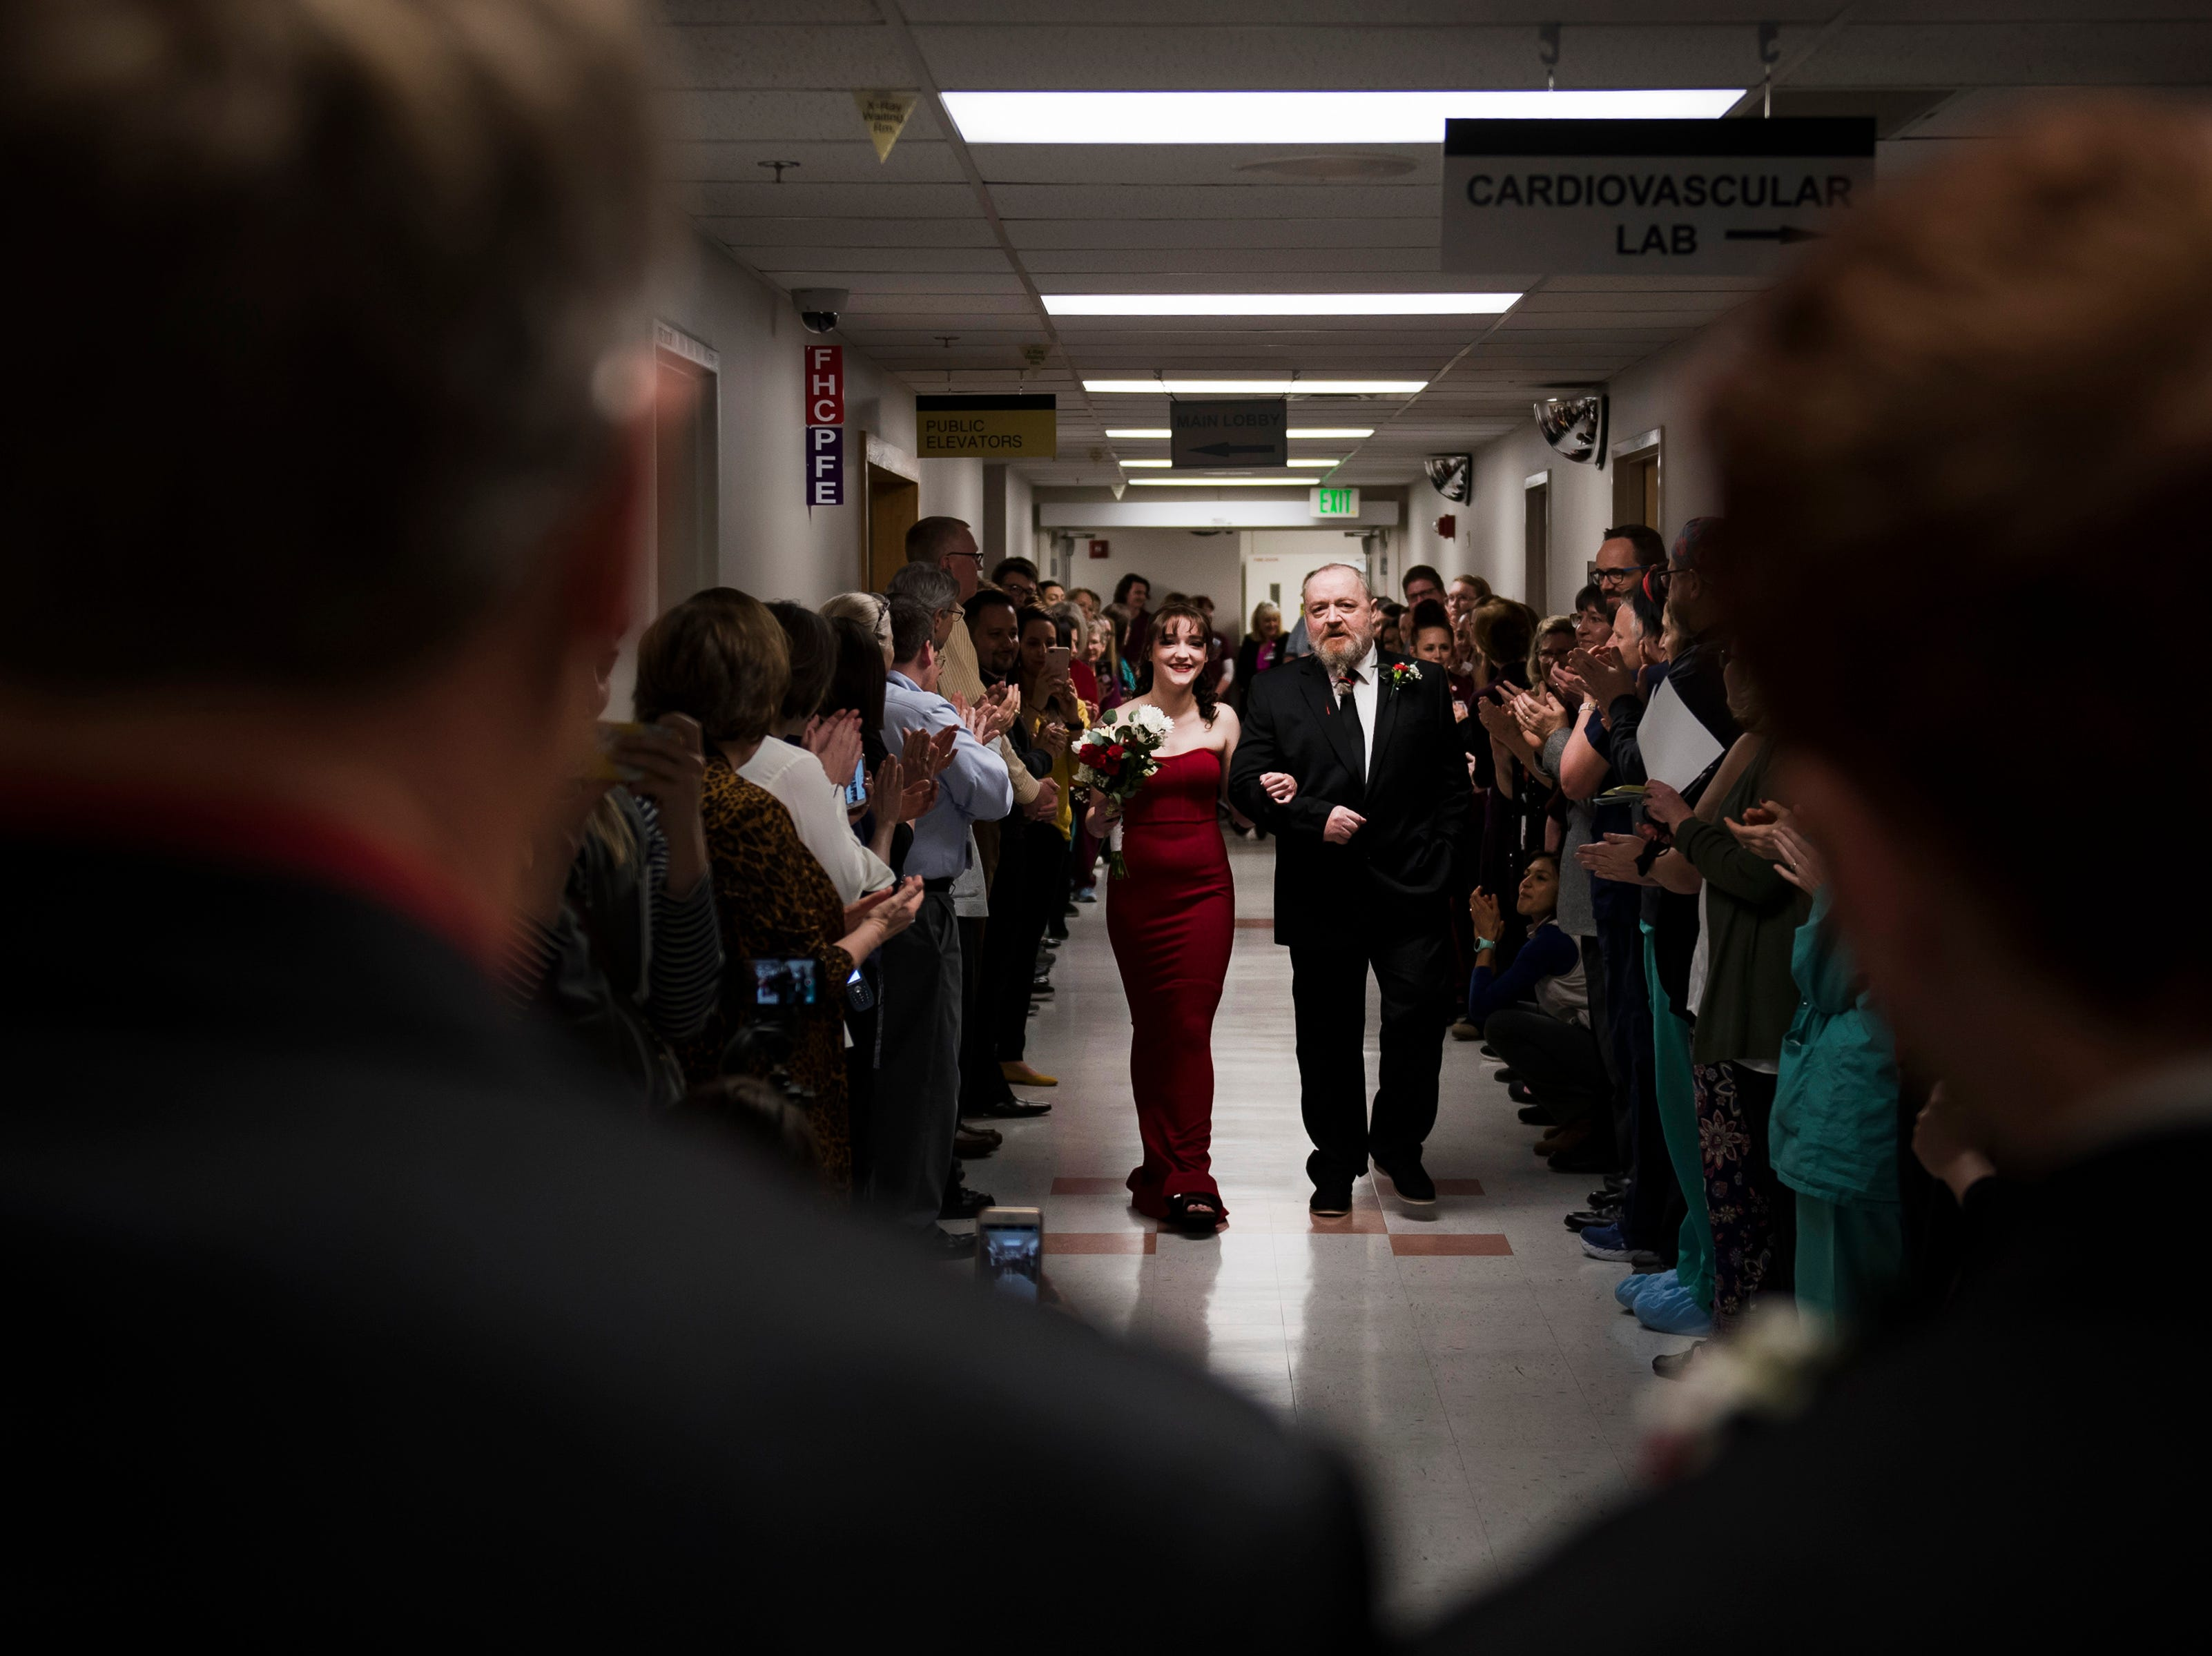 Father of the bride Paul Justice walks how daughter Grace Justice down the hallway leading to the chapel lined with UCHealth employees during Grace's wedding to finance James Christian on Thursday, Feb. 14, 2019, at UCHealth Poudre Valley Hospital in Fort Collins, Colo.